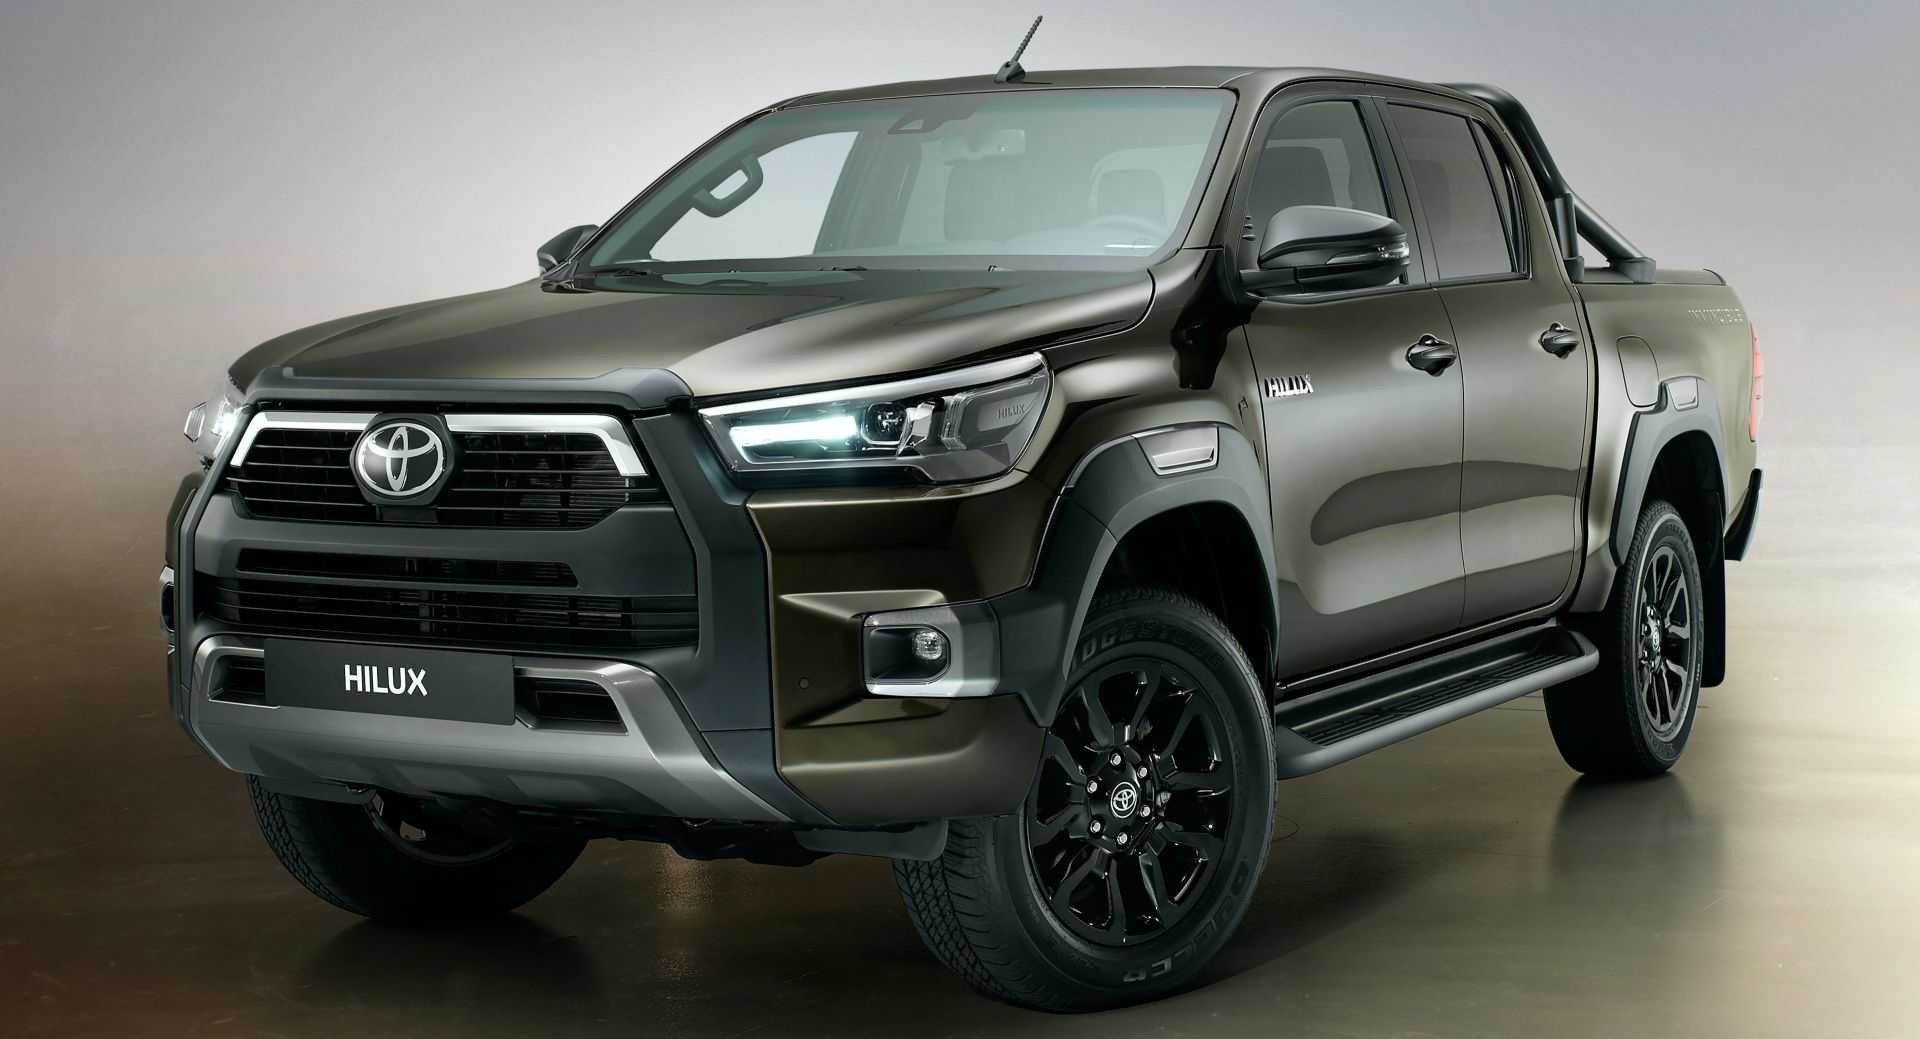 SA's most-loved bakkie revealed